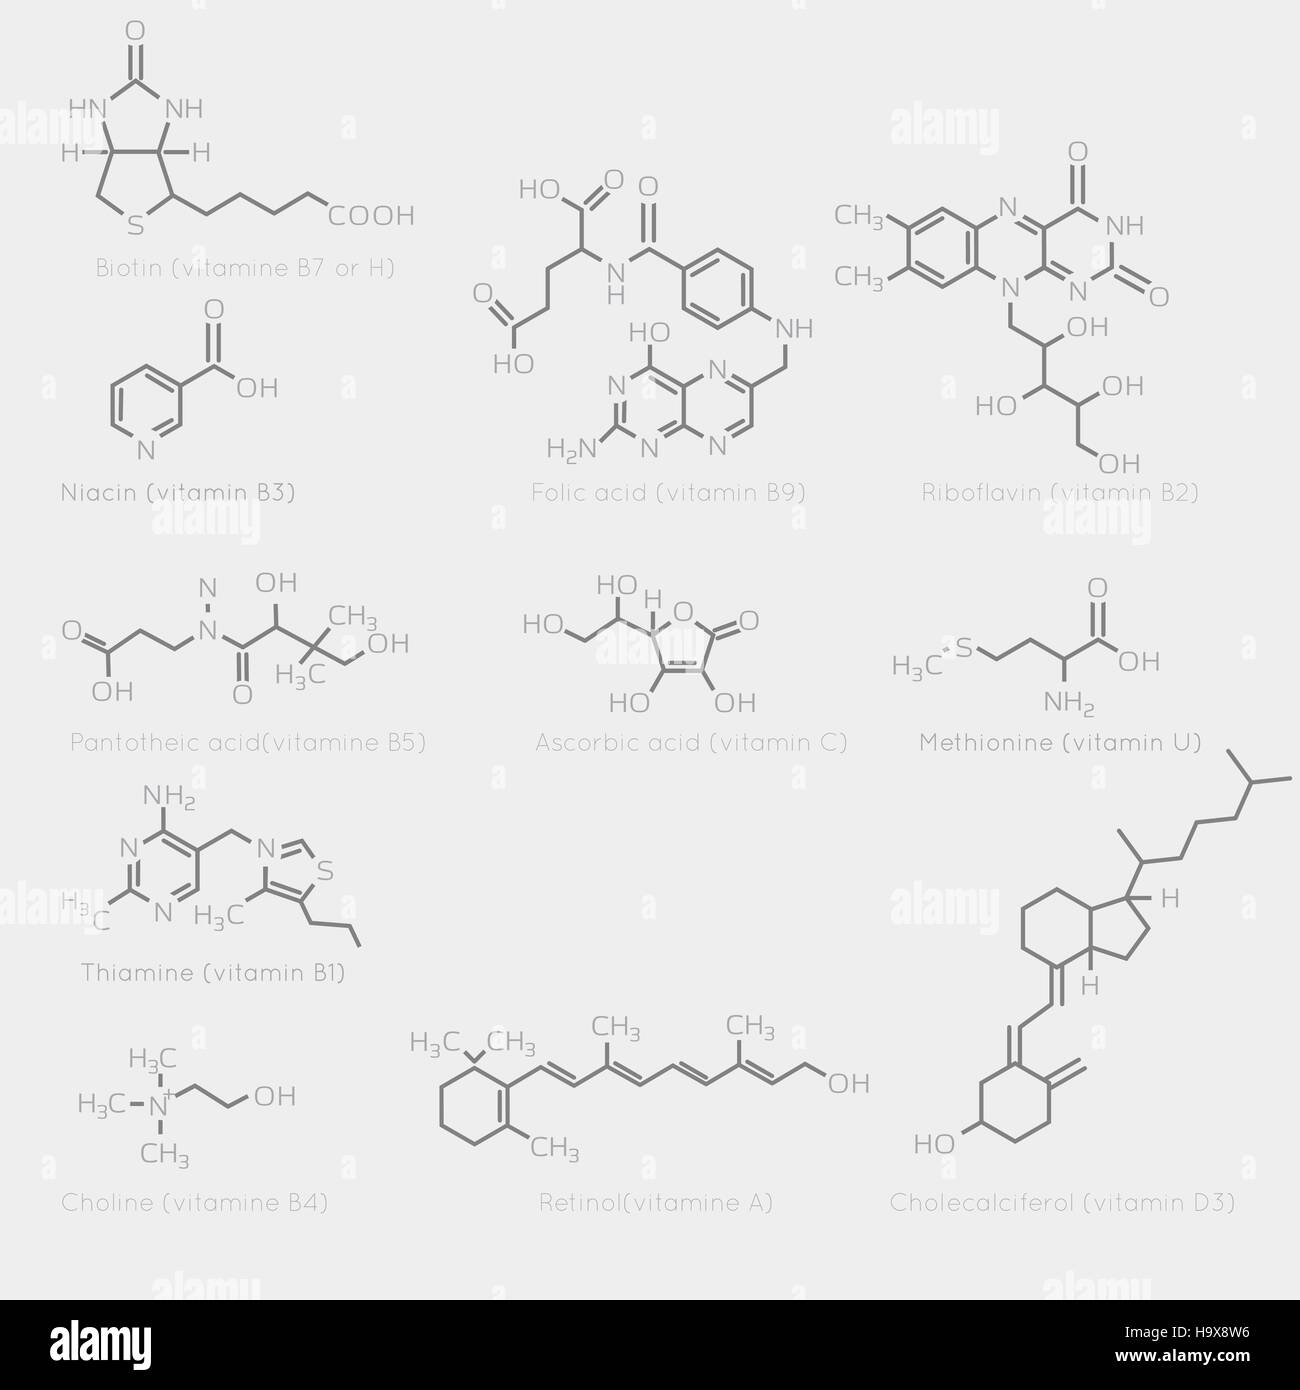 Skeletal formulas of some vitamins. Schematic image of chemical organic molecules, nutrients. - Stock Vector